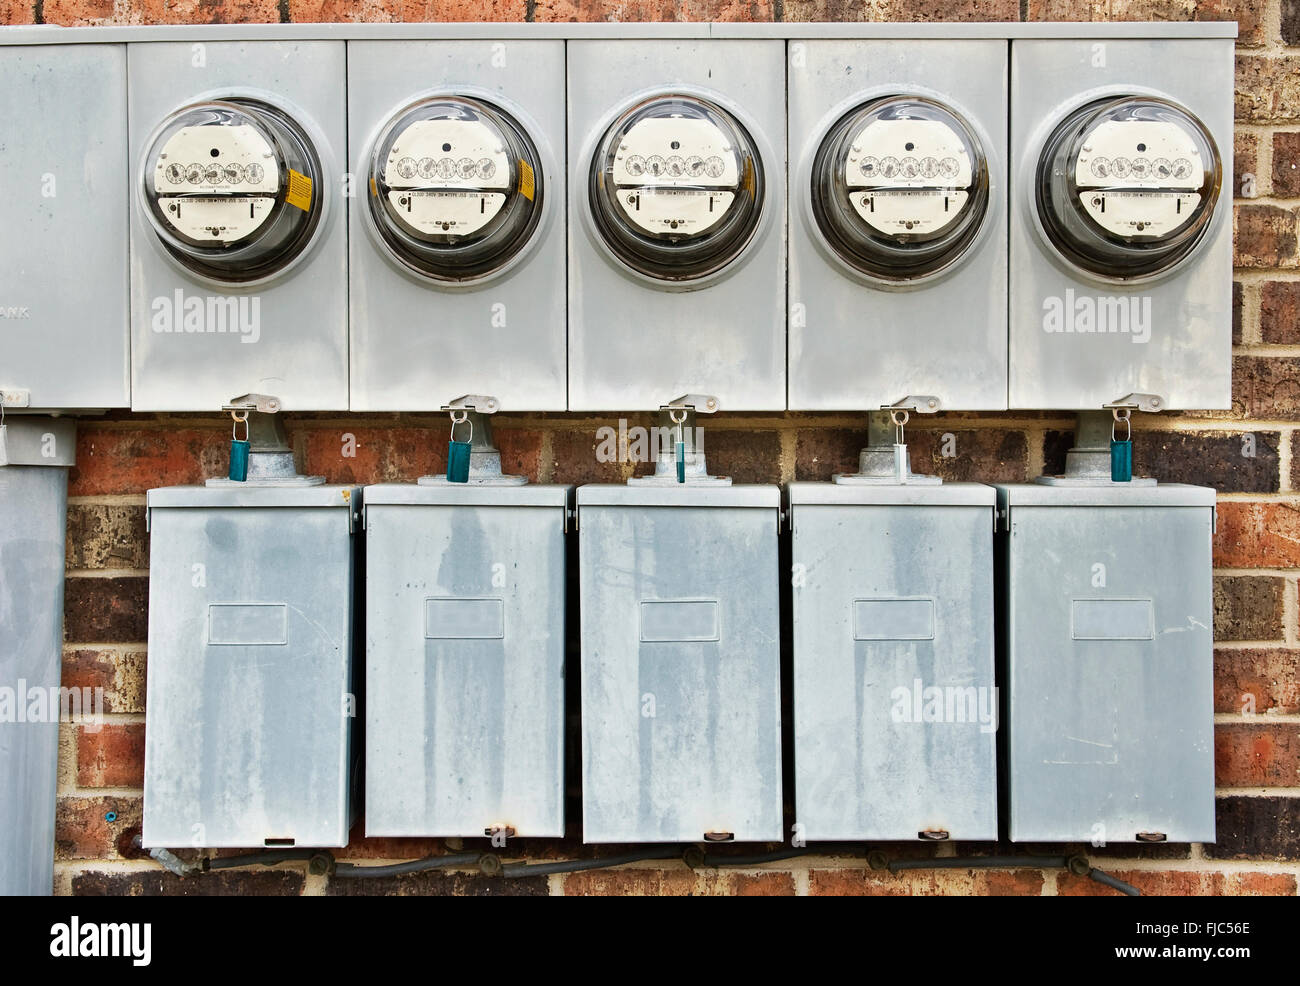 Electric Meters For Multi-Family Apartments 1 - Stock Image